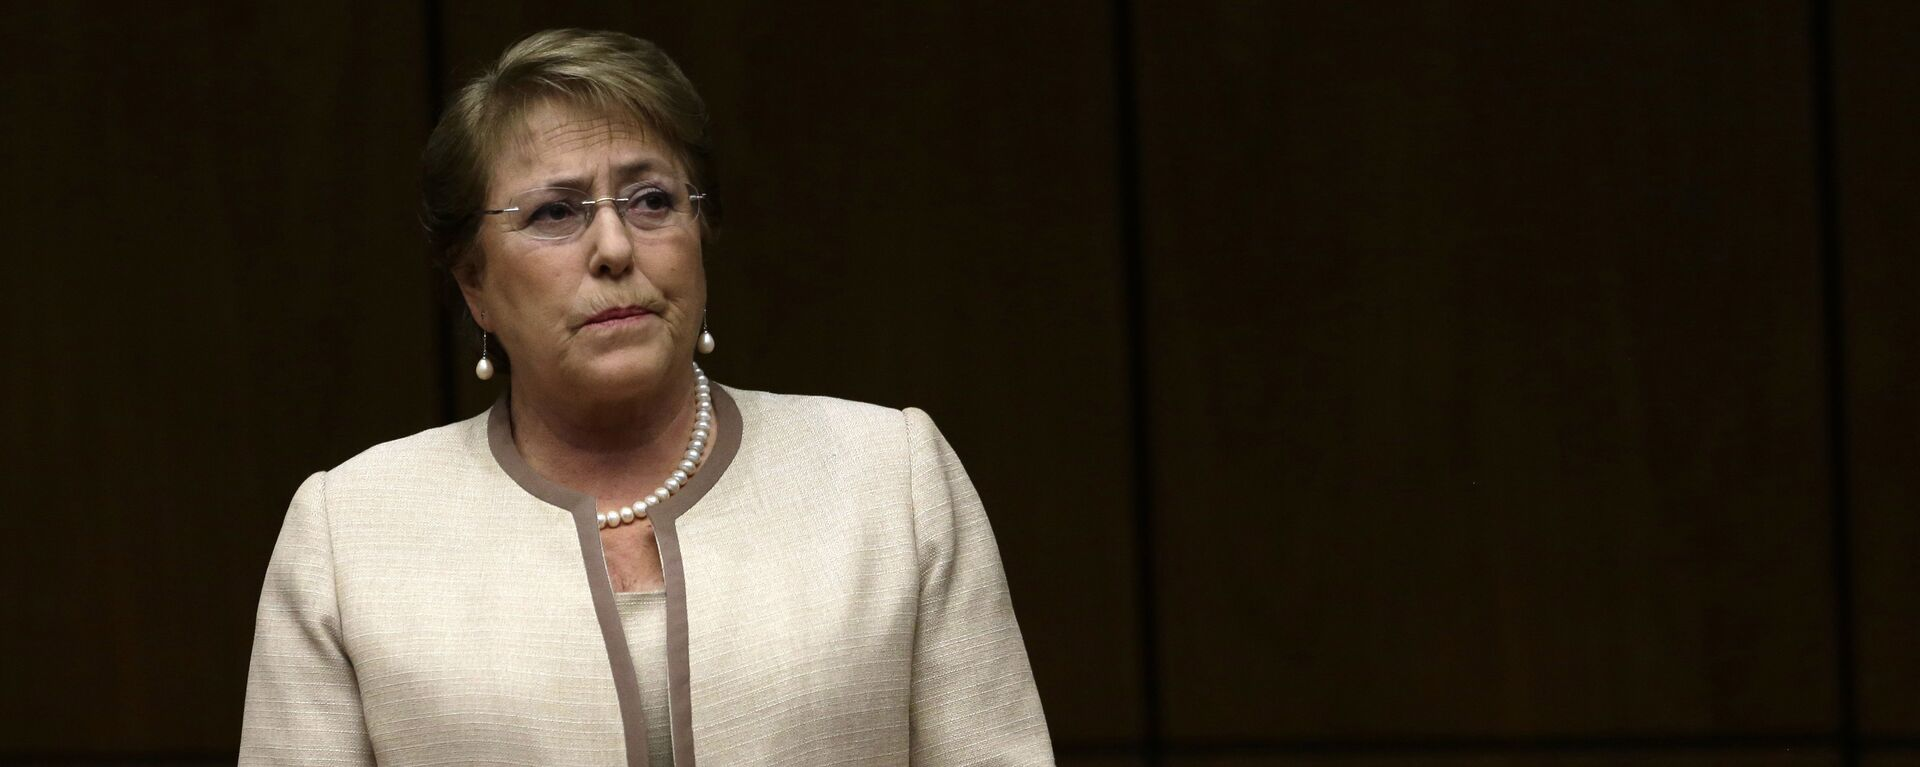 In this Aug. 21, 2015, file photo, Chile's President Michelle Bachelet attends a congressional session, during her official visit, in Asuncion, Paraguay - Sputnik Mundo, 1920, 10.05.2021